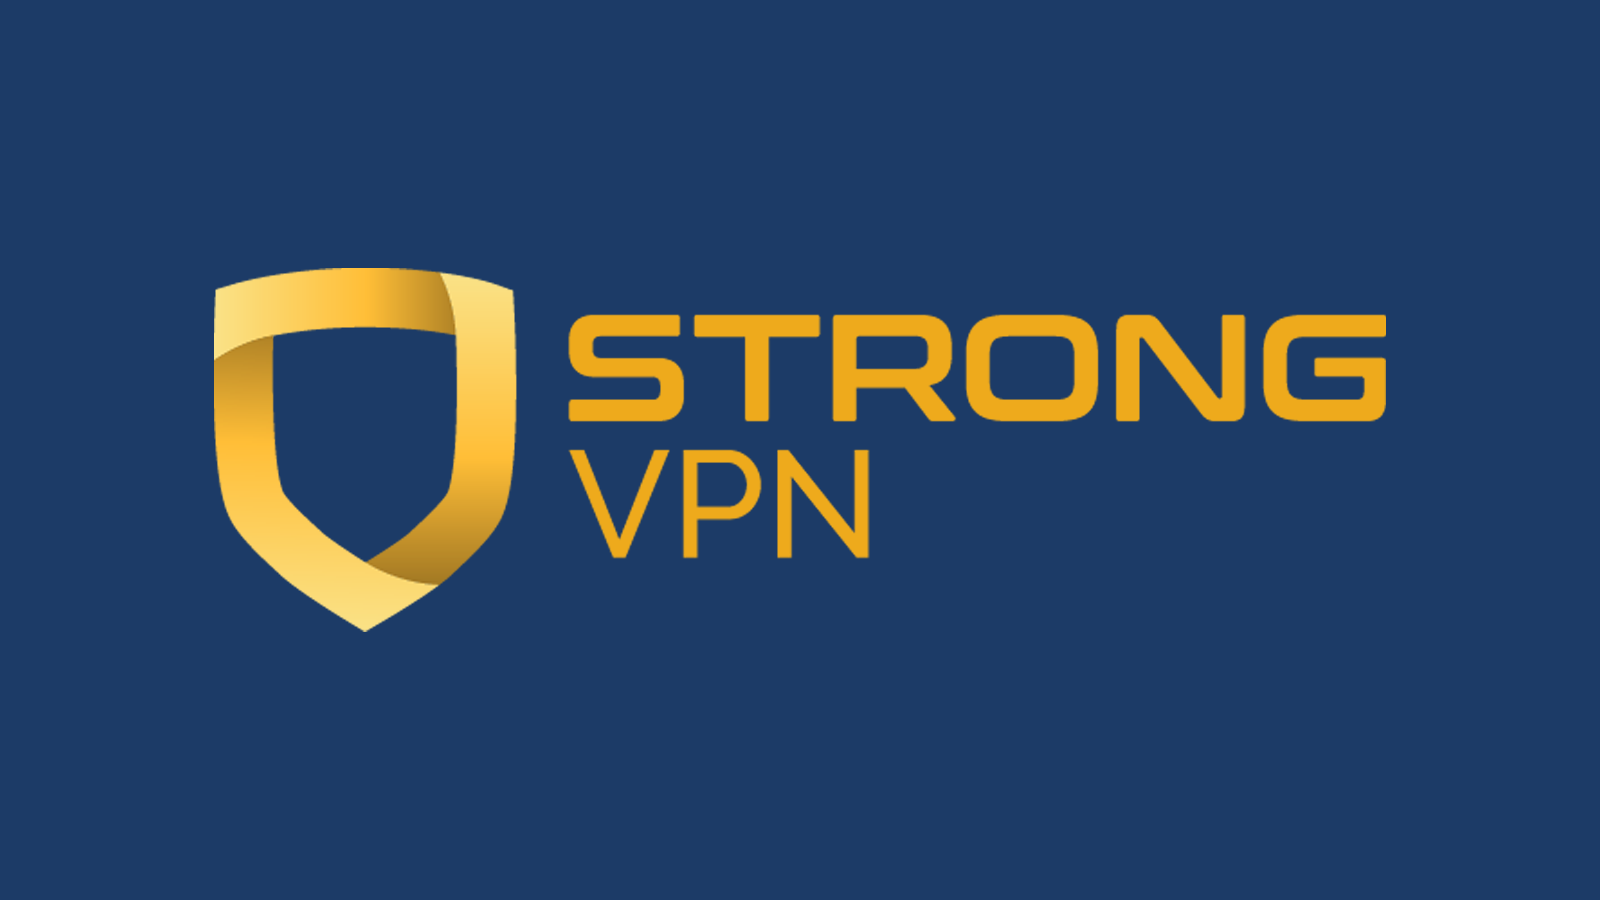 StrongVPN company name and logo against dark background